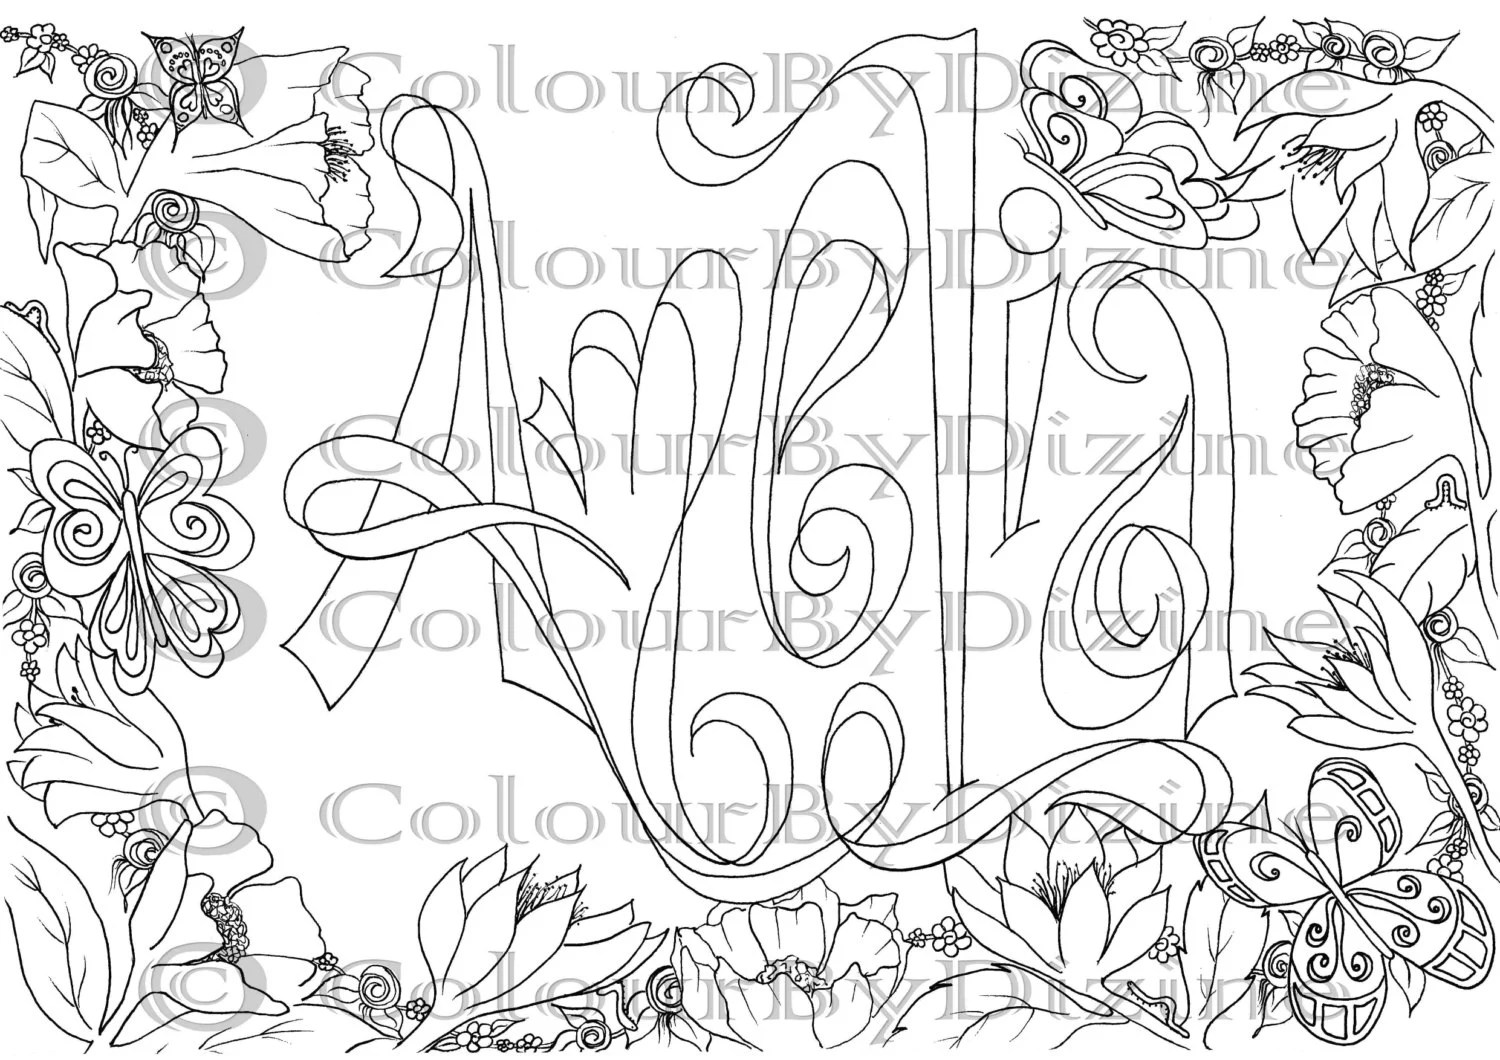 Coloring page girl's name 'Amelia' in flower by